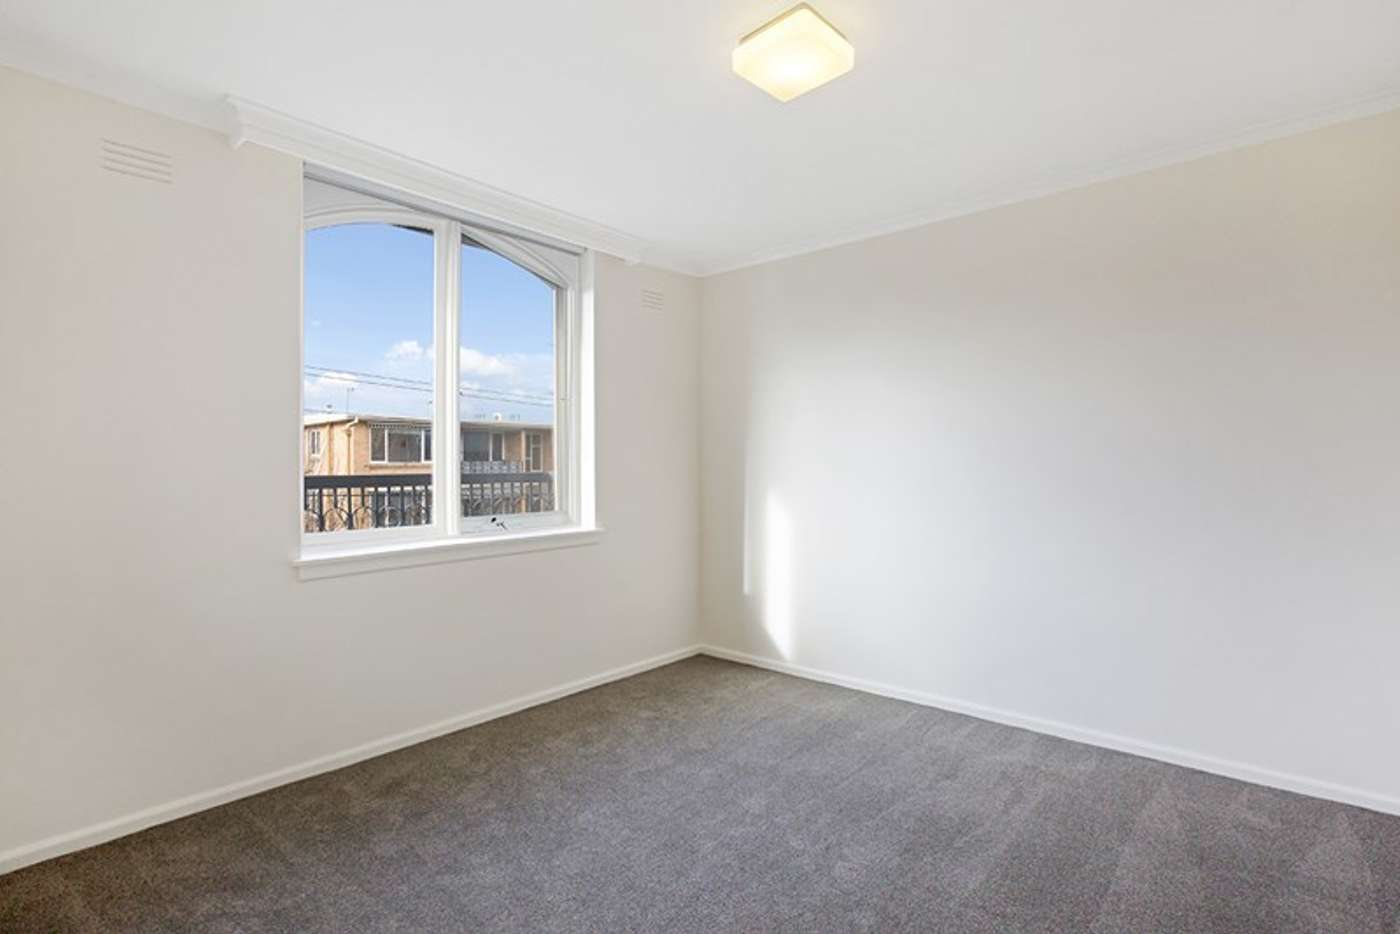 Sixth view of Homely apartment listing, 13/31 Kensington Road, South Yarra VIC 3141